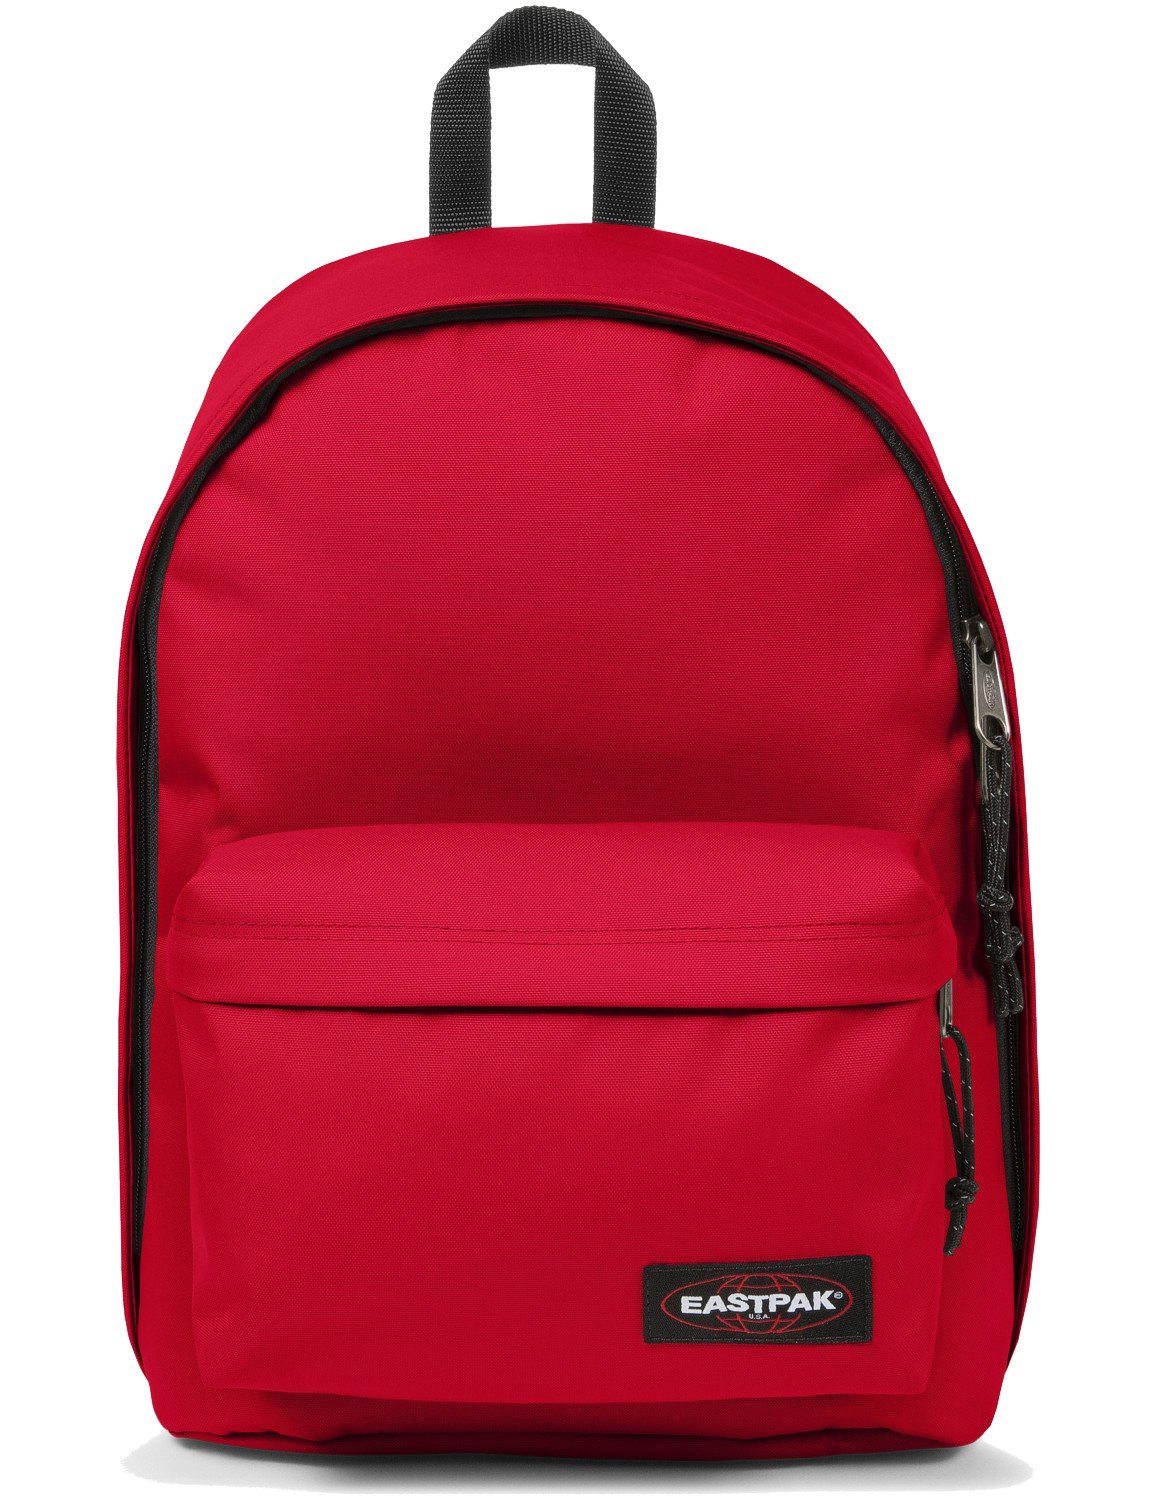 Eastpak Rucksack »Out of Office« mit Laptopfach Sailor Red Rot